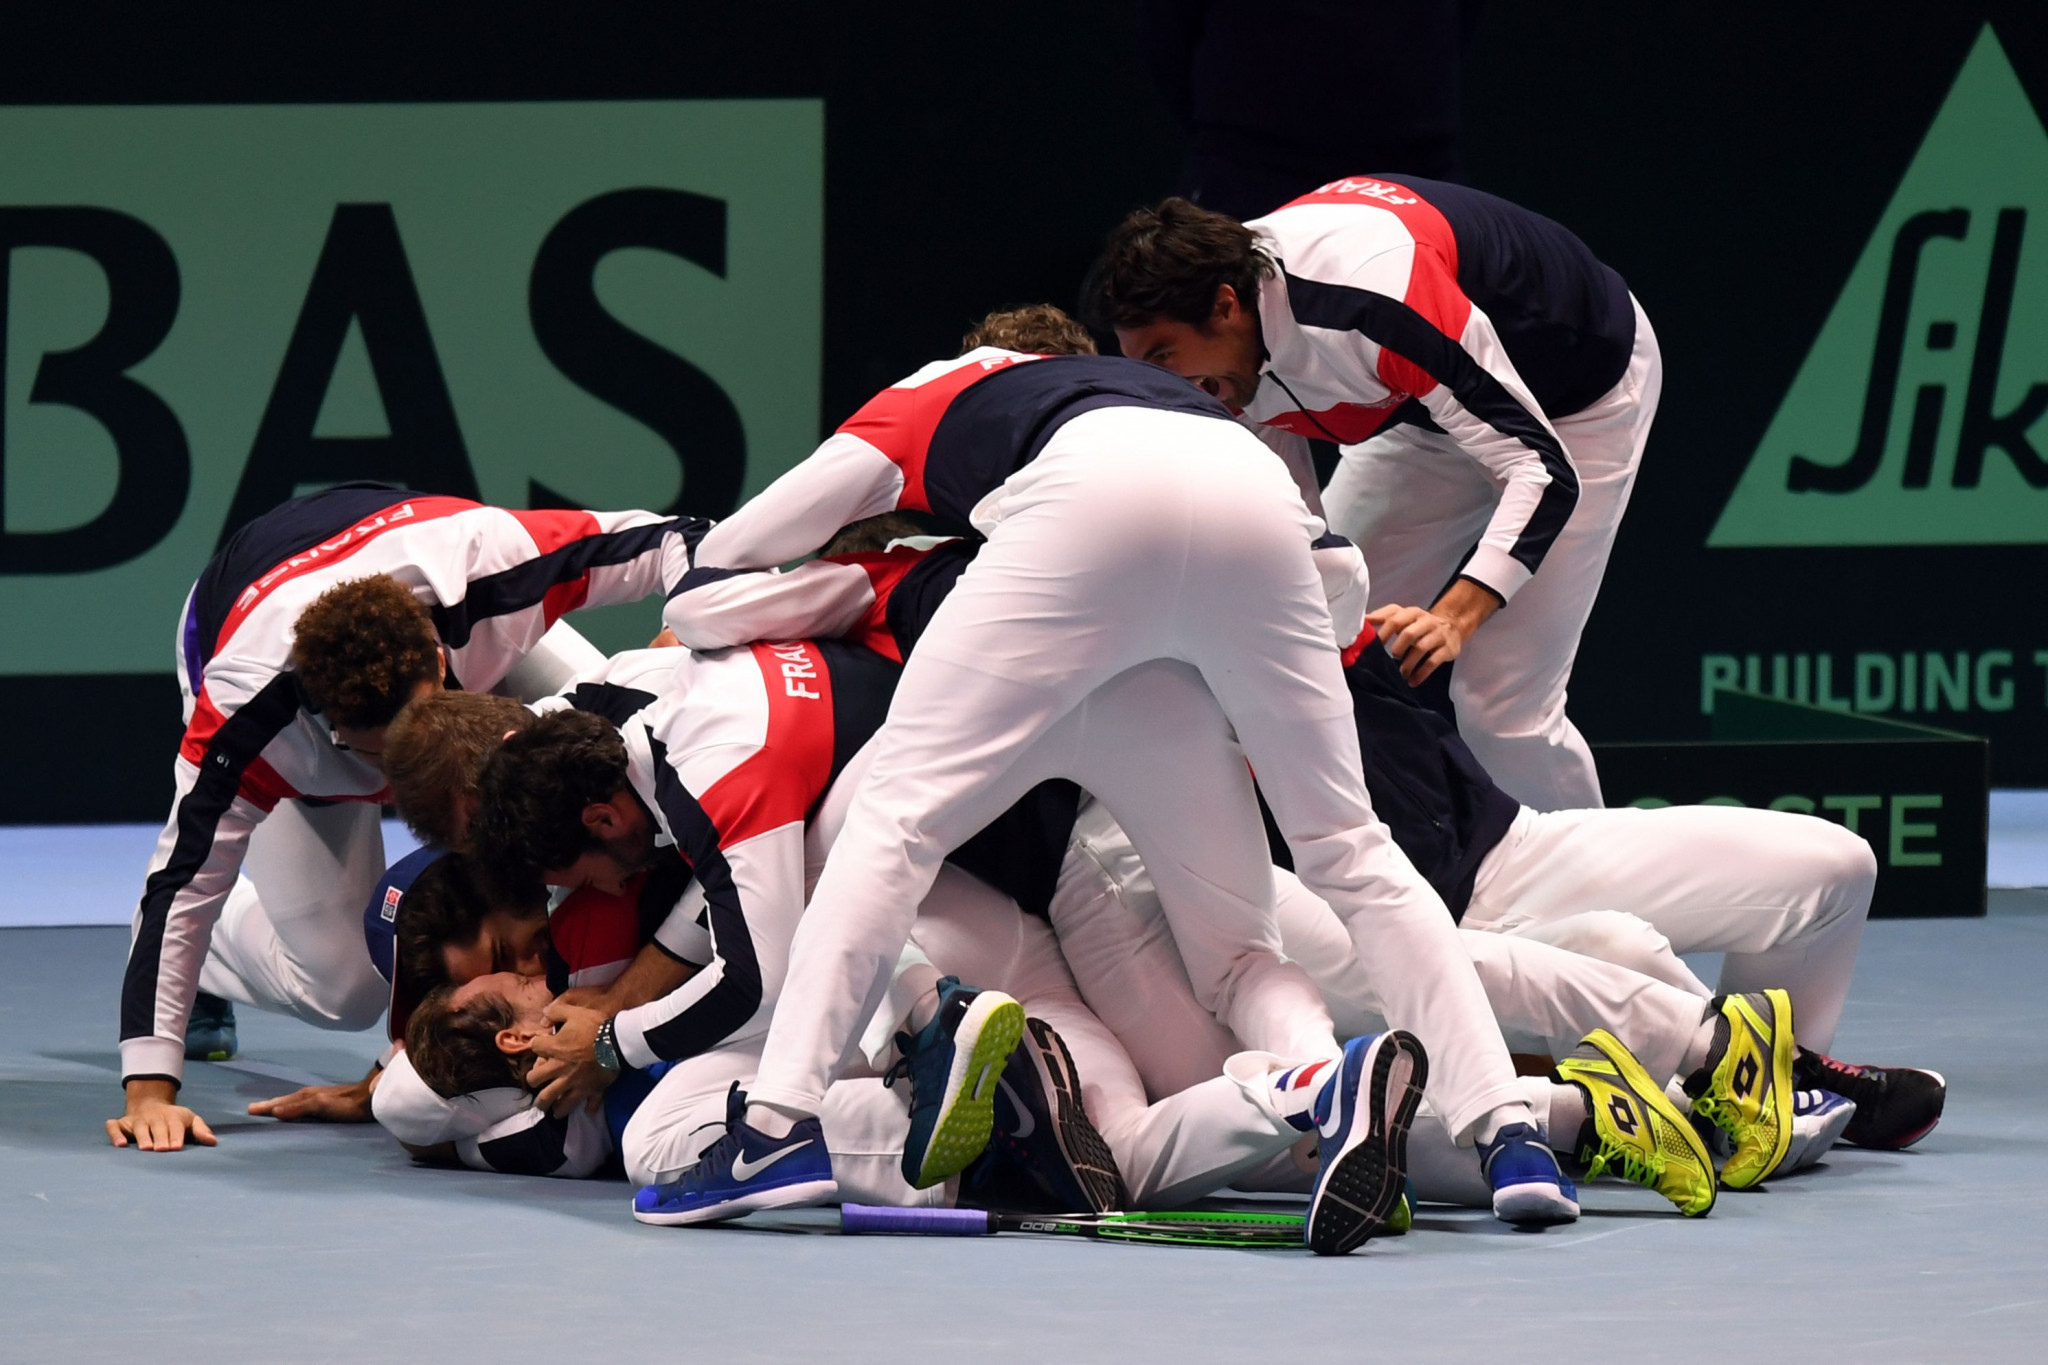 A jubilant France team celebrate their first Davis Cup success in 16 years after a thrilling 3-2 victory over Belgium in Lille ©Getty Images